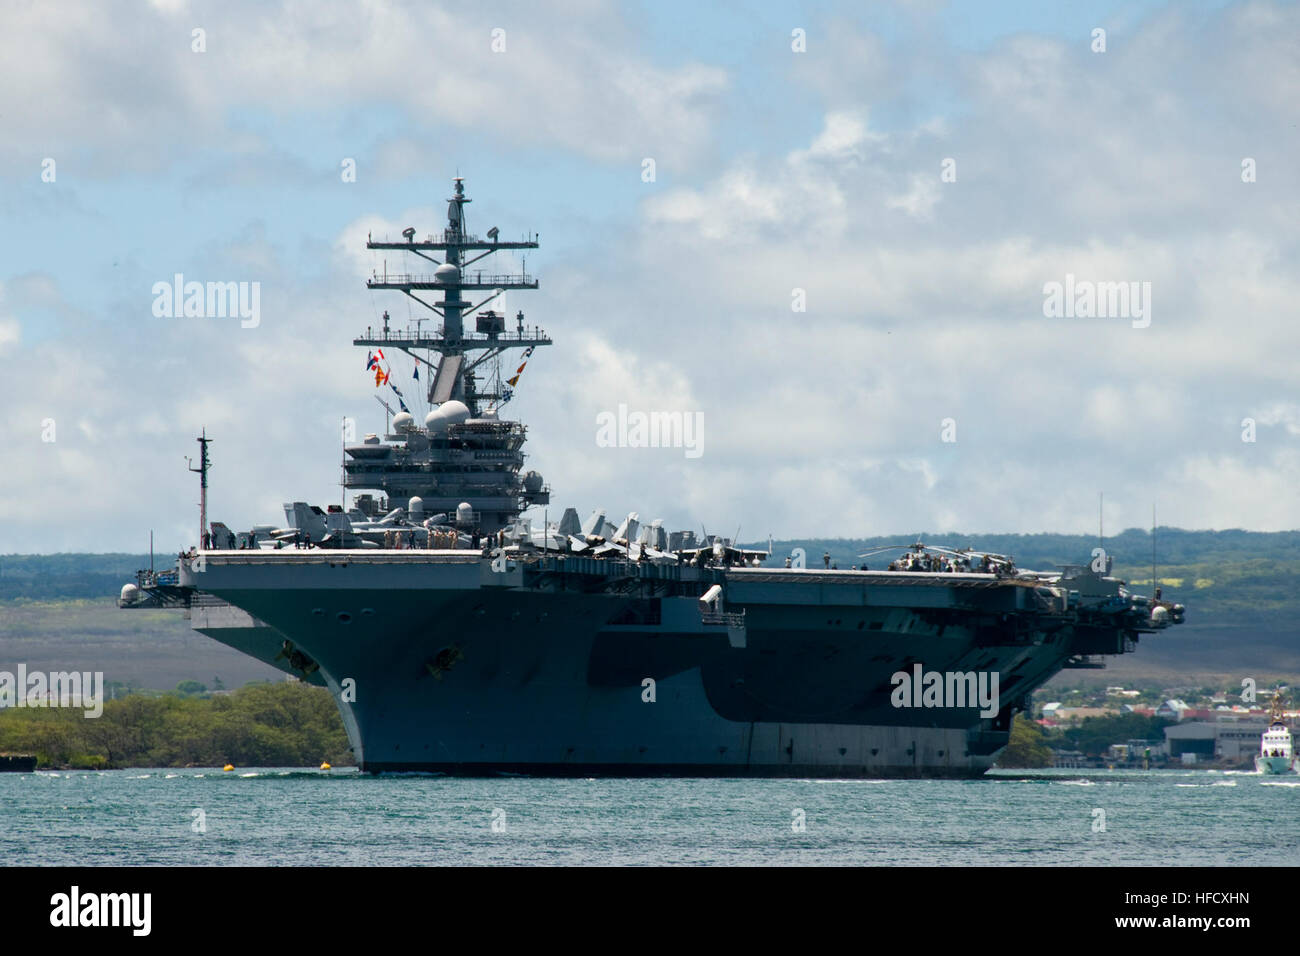 The Nimitz-class nuclear-powered aircraft carrier USS Ronald Reagan departs Joint Base Pearl Harbor-Hickam to participate Stock Photo